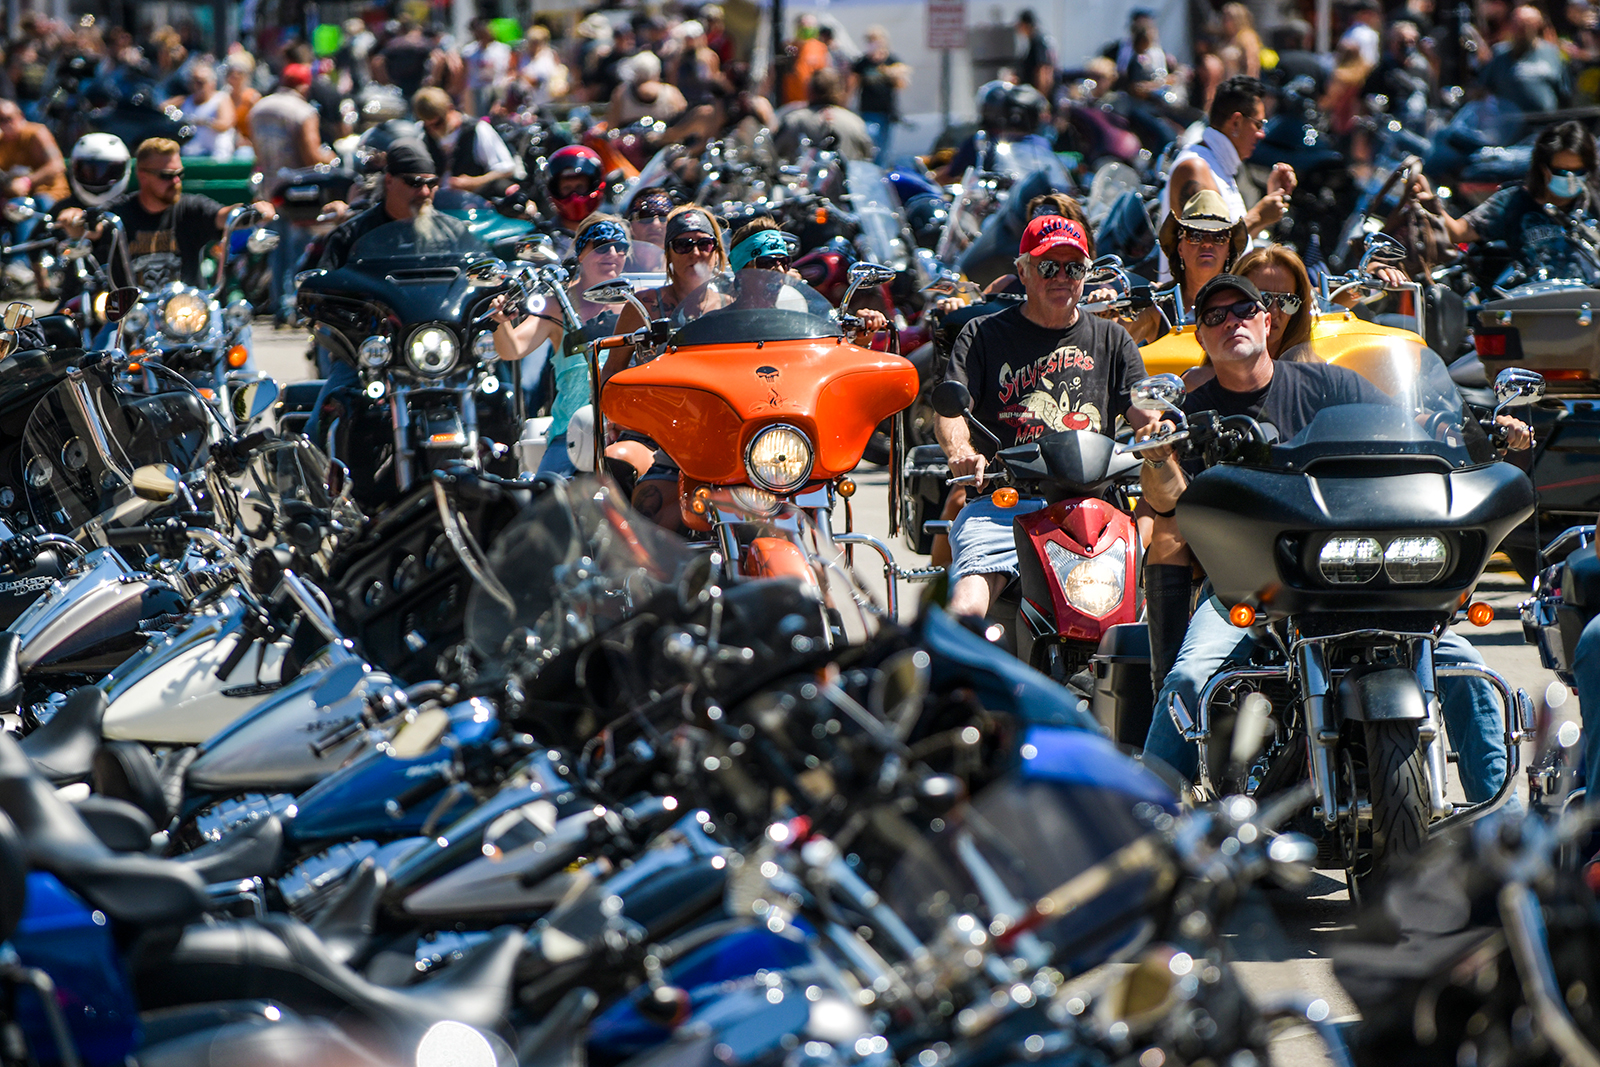 Riders begin to gather in South Dakota for 80th Sturgis Motorcycle Rally